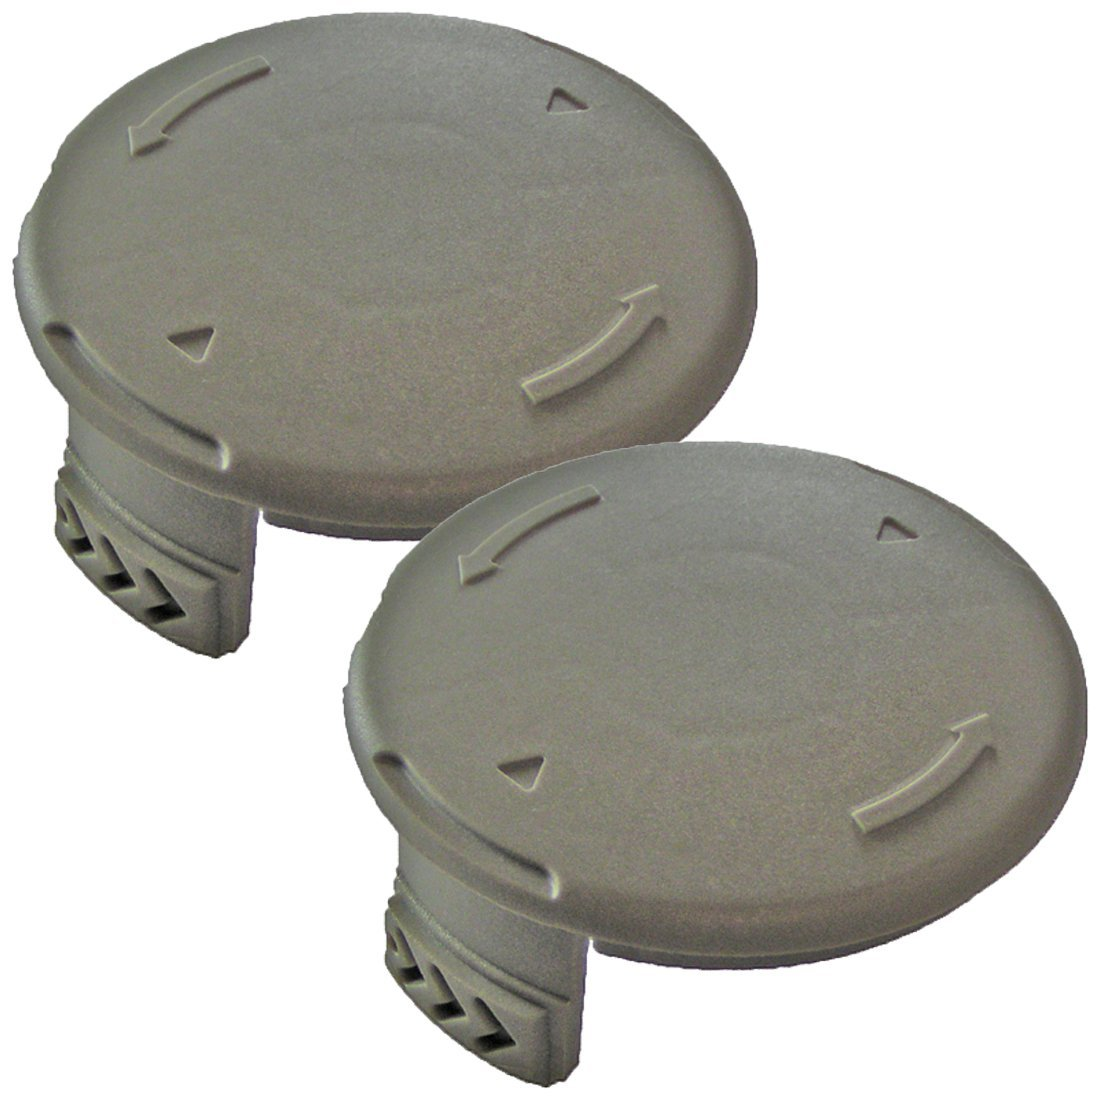 Ryobi P2002-P2004 Cordless String Trimmer Replacement (2 Pack) Spool Cover # 3411546-7G-2pk Techtronic Industries 522994001